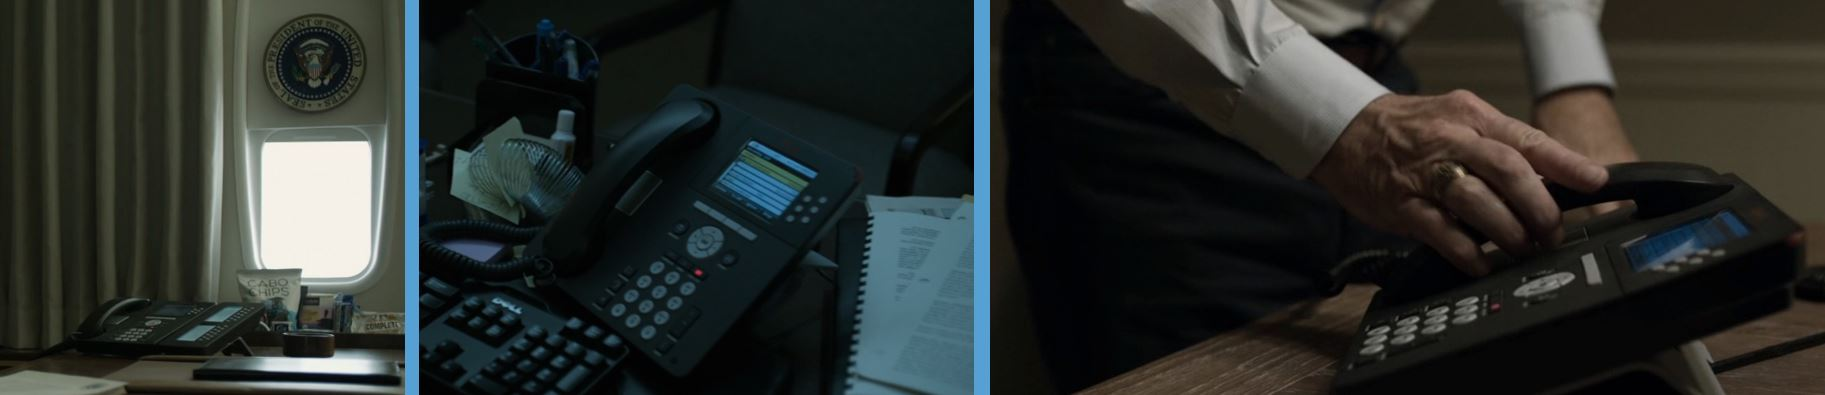 avaya telephones telephones in house of cards season 4